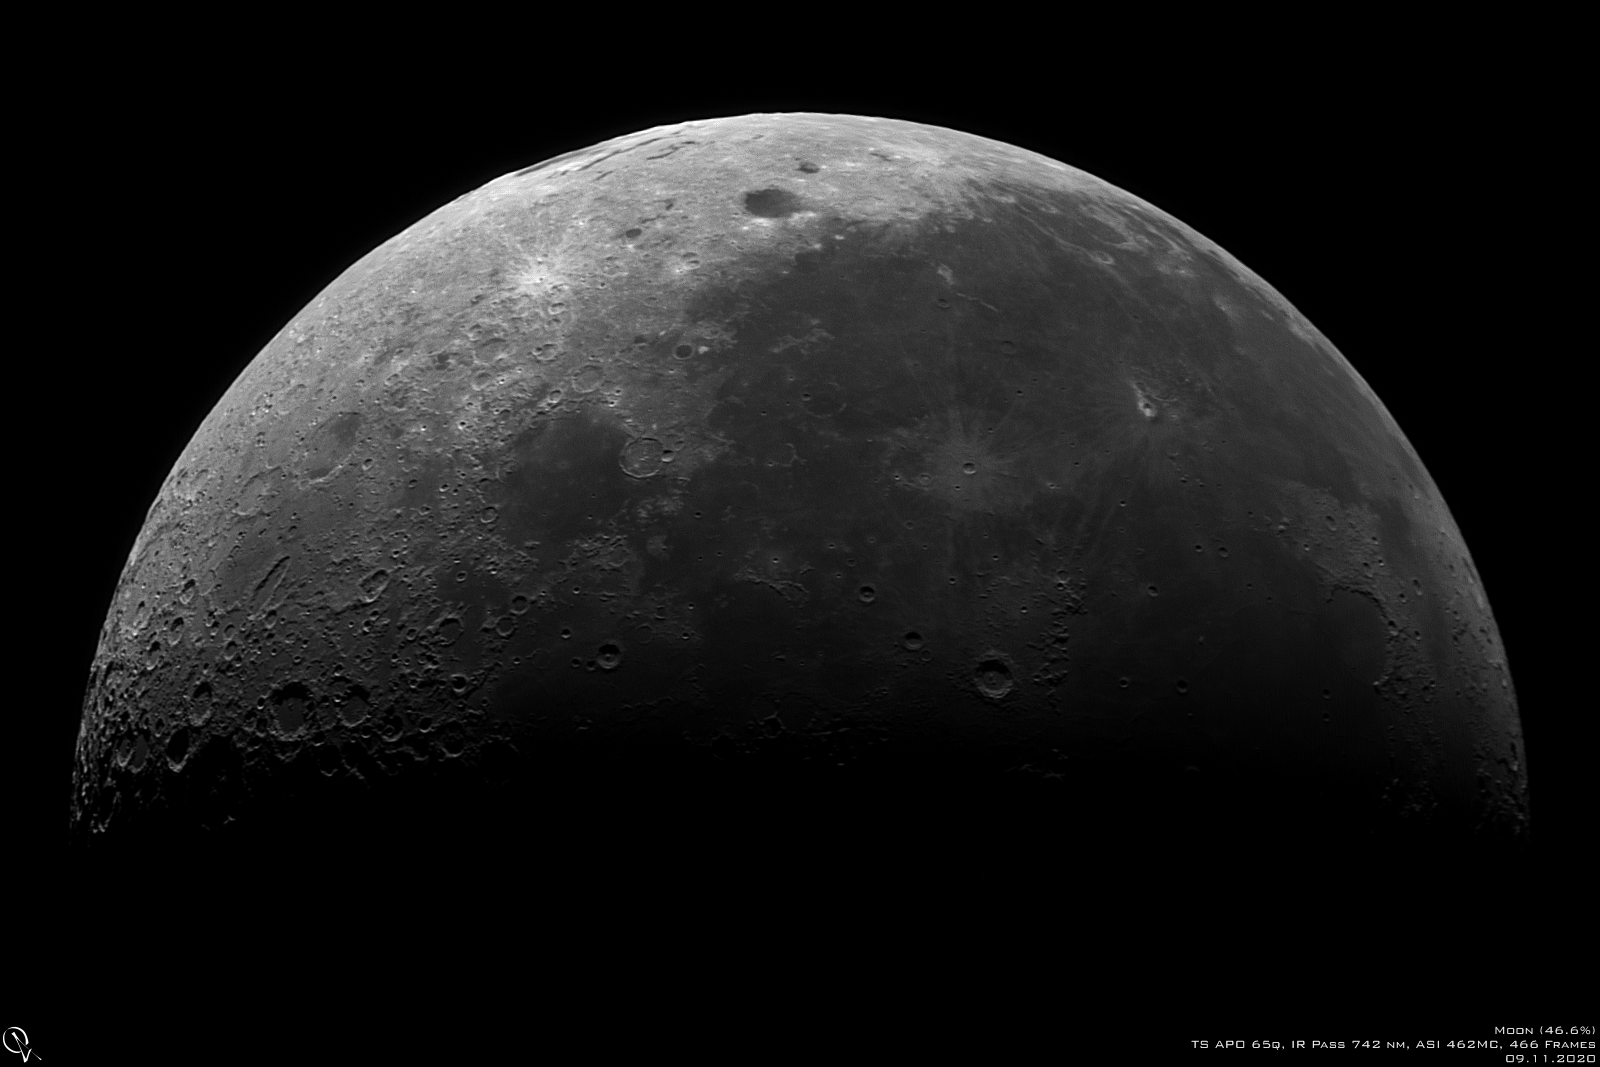 Moon_full_09_11_2019.png.26bb212e4eb727fb895a1dee0993a70a.png